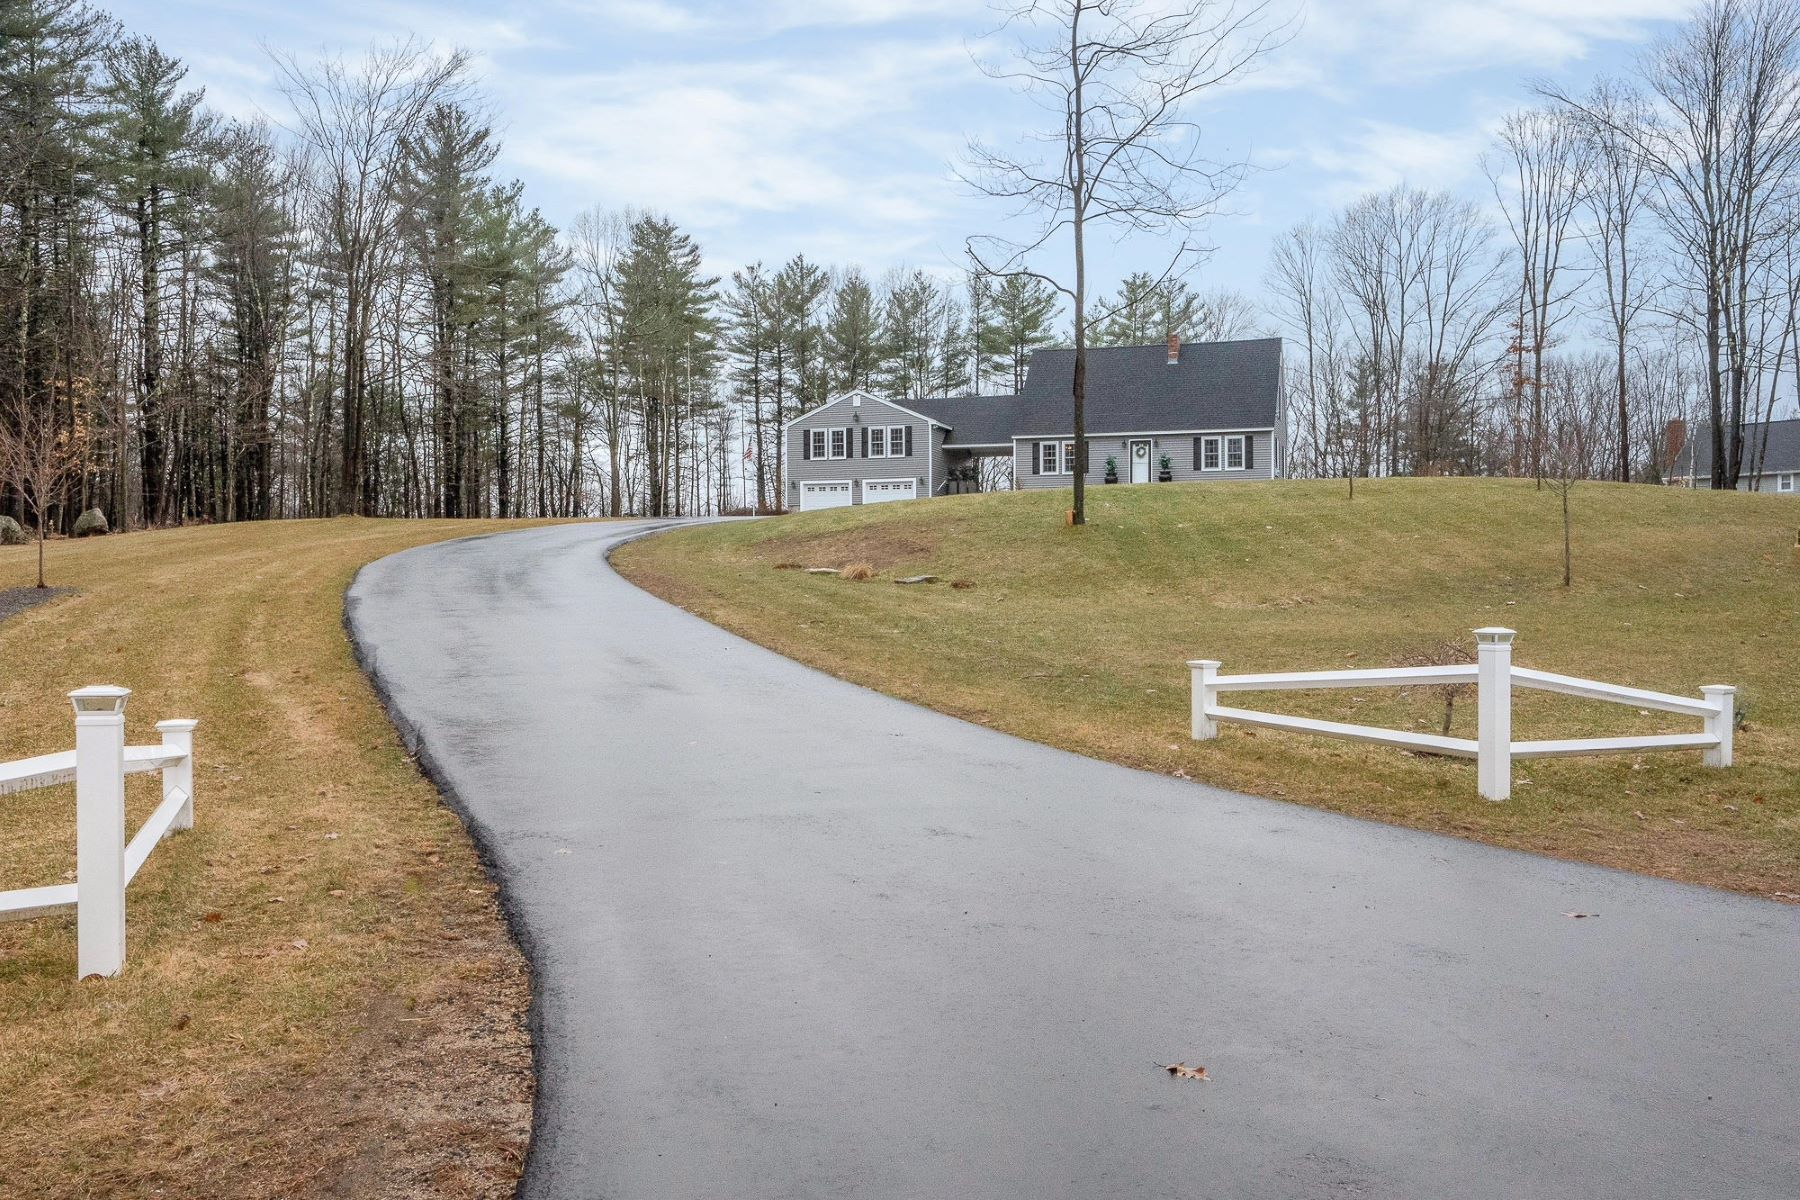 Single Family Homes for Sale at Perfect Year Round Living Indoors and Out! 144 Joe English Road New Boston, New Hampshire 03070 United States